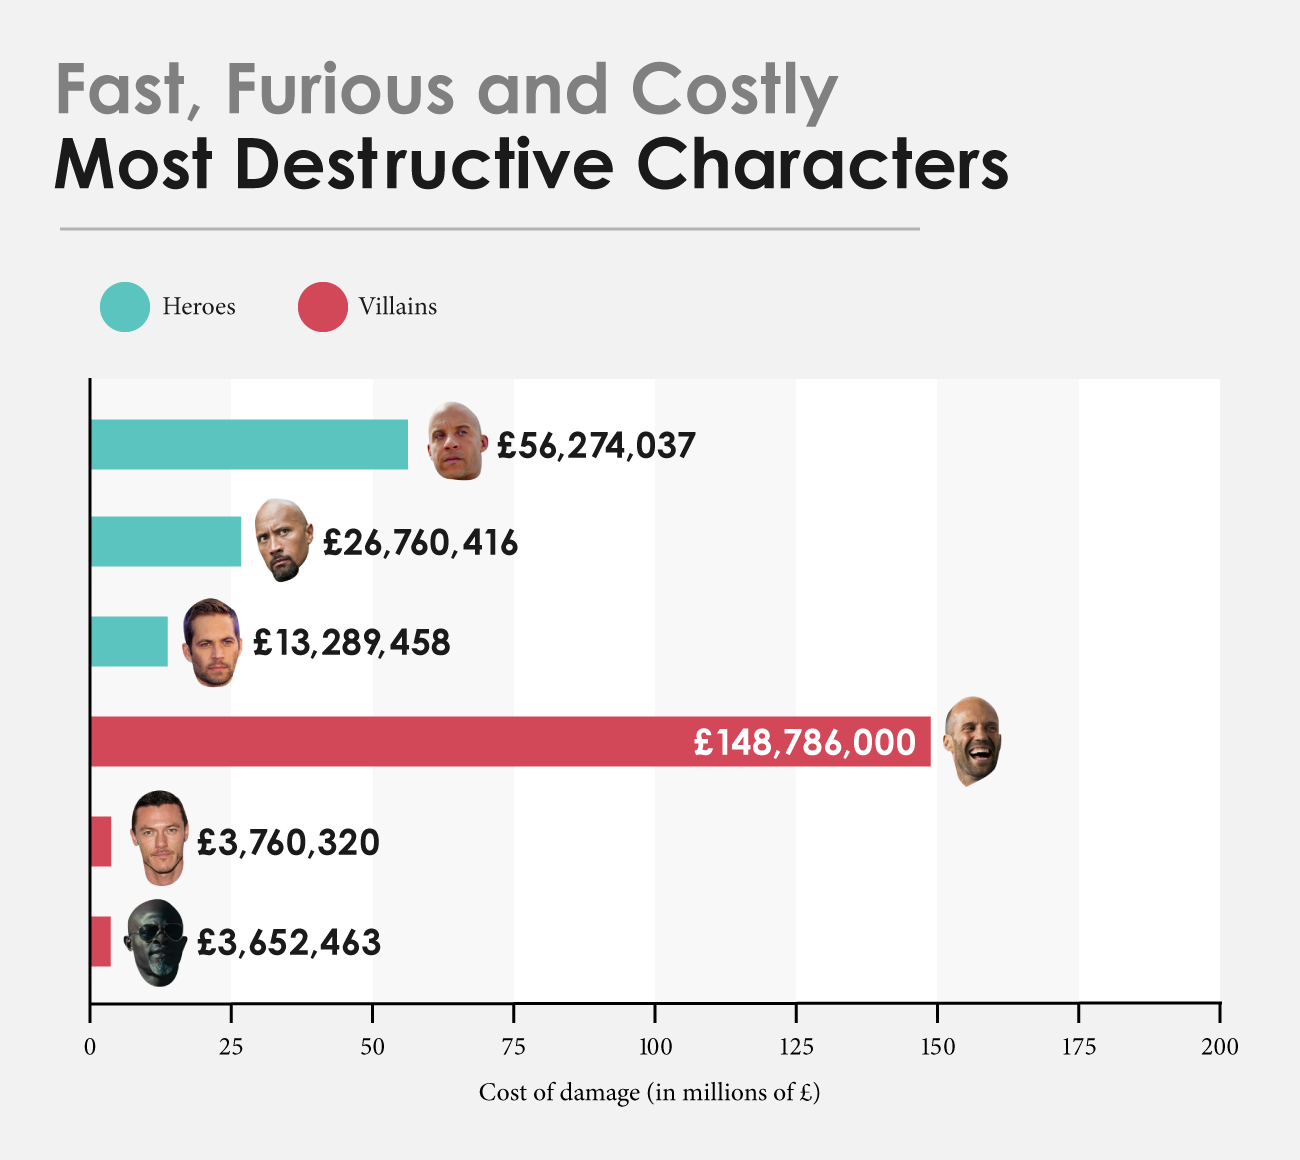 UK-Fast-and-Furious-Cost-of-Damage-by-Character